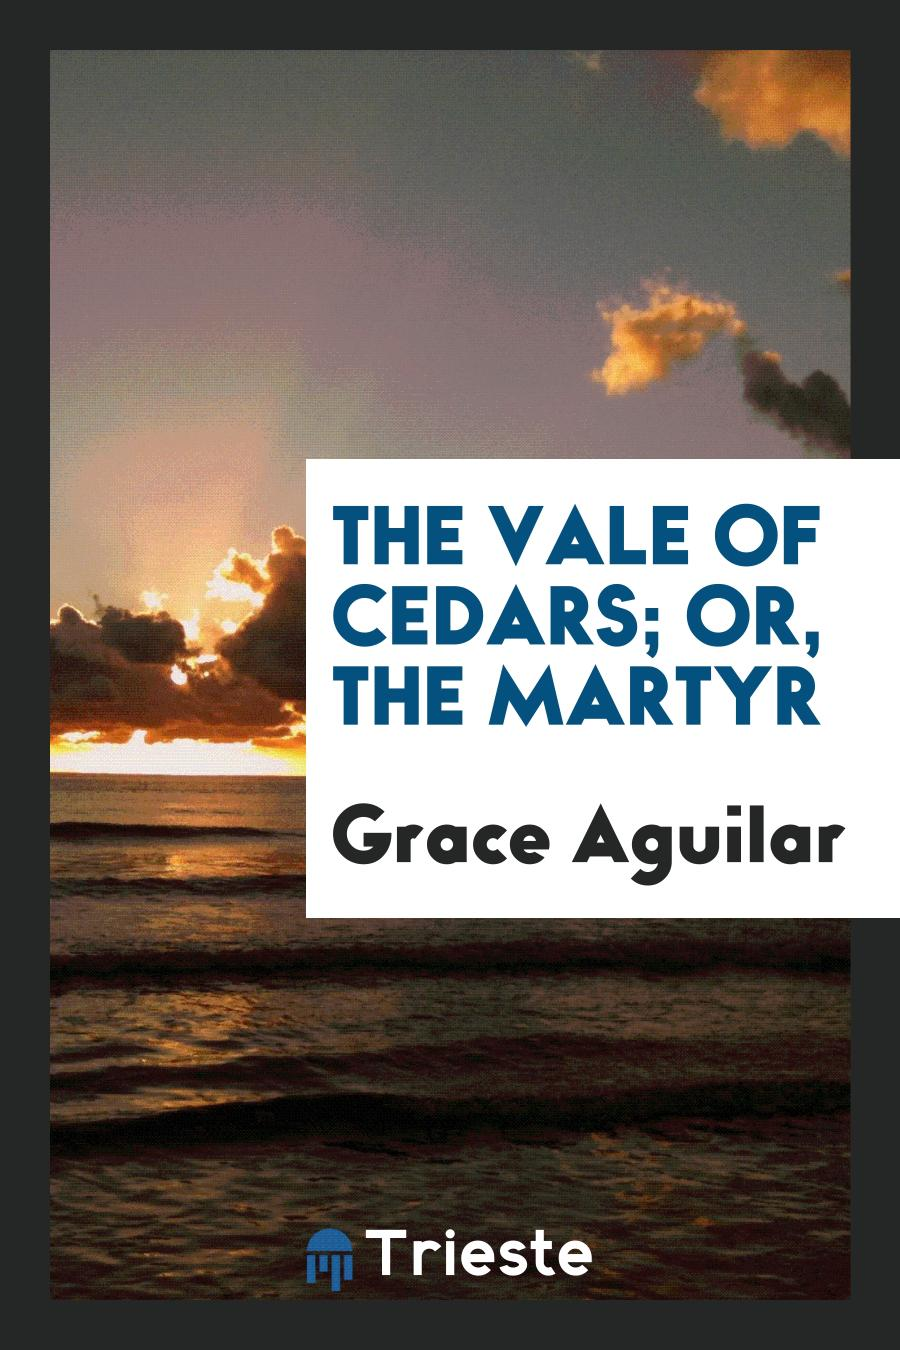 The Vale of Cedars; Or, the Martyr